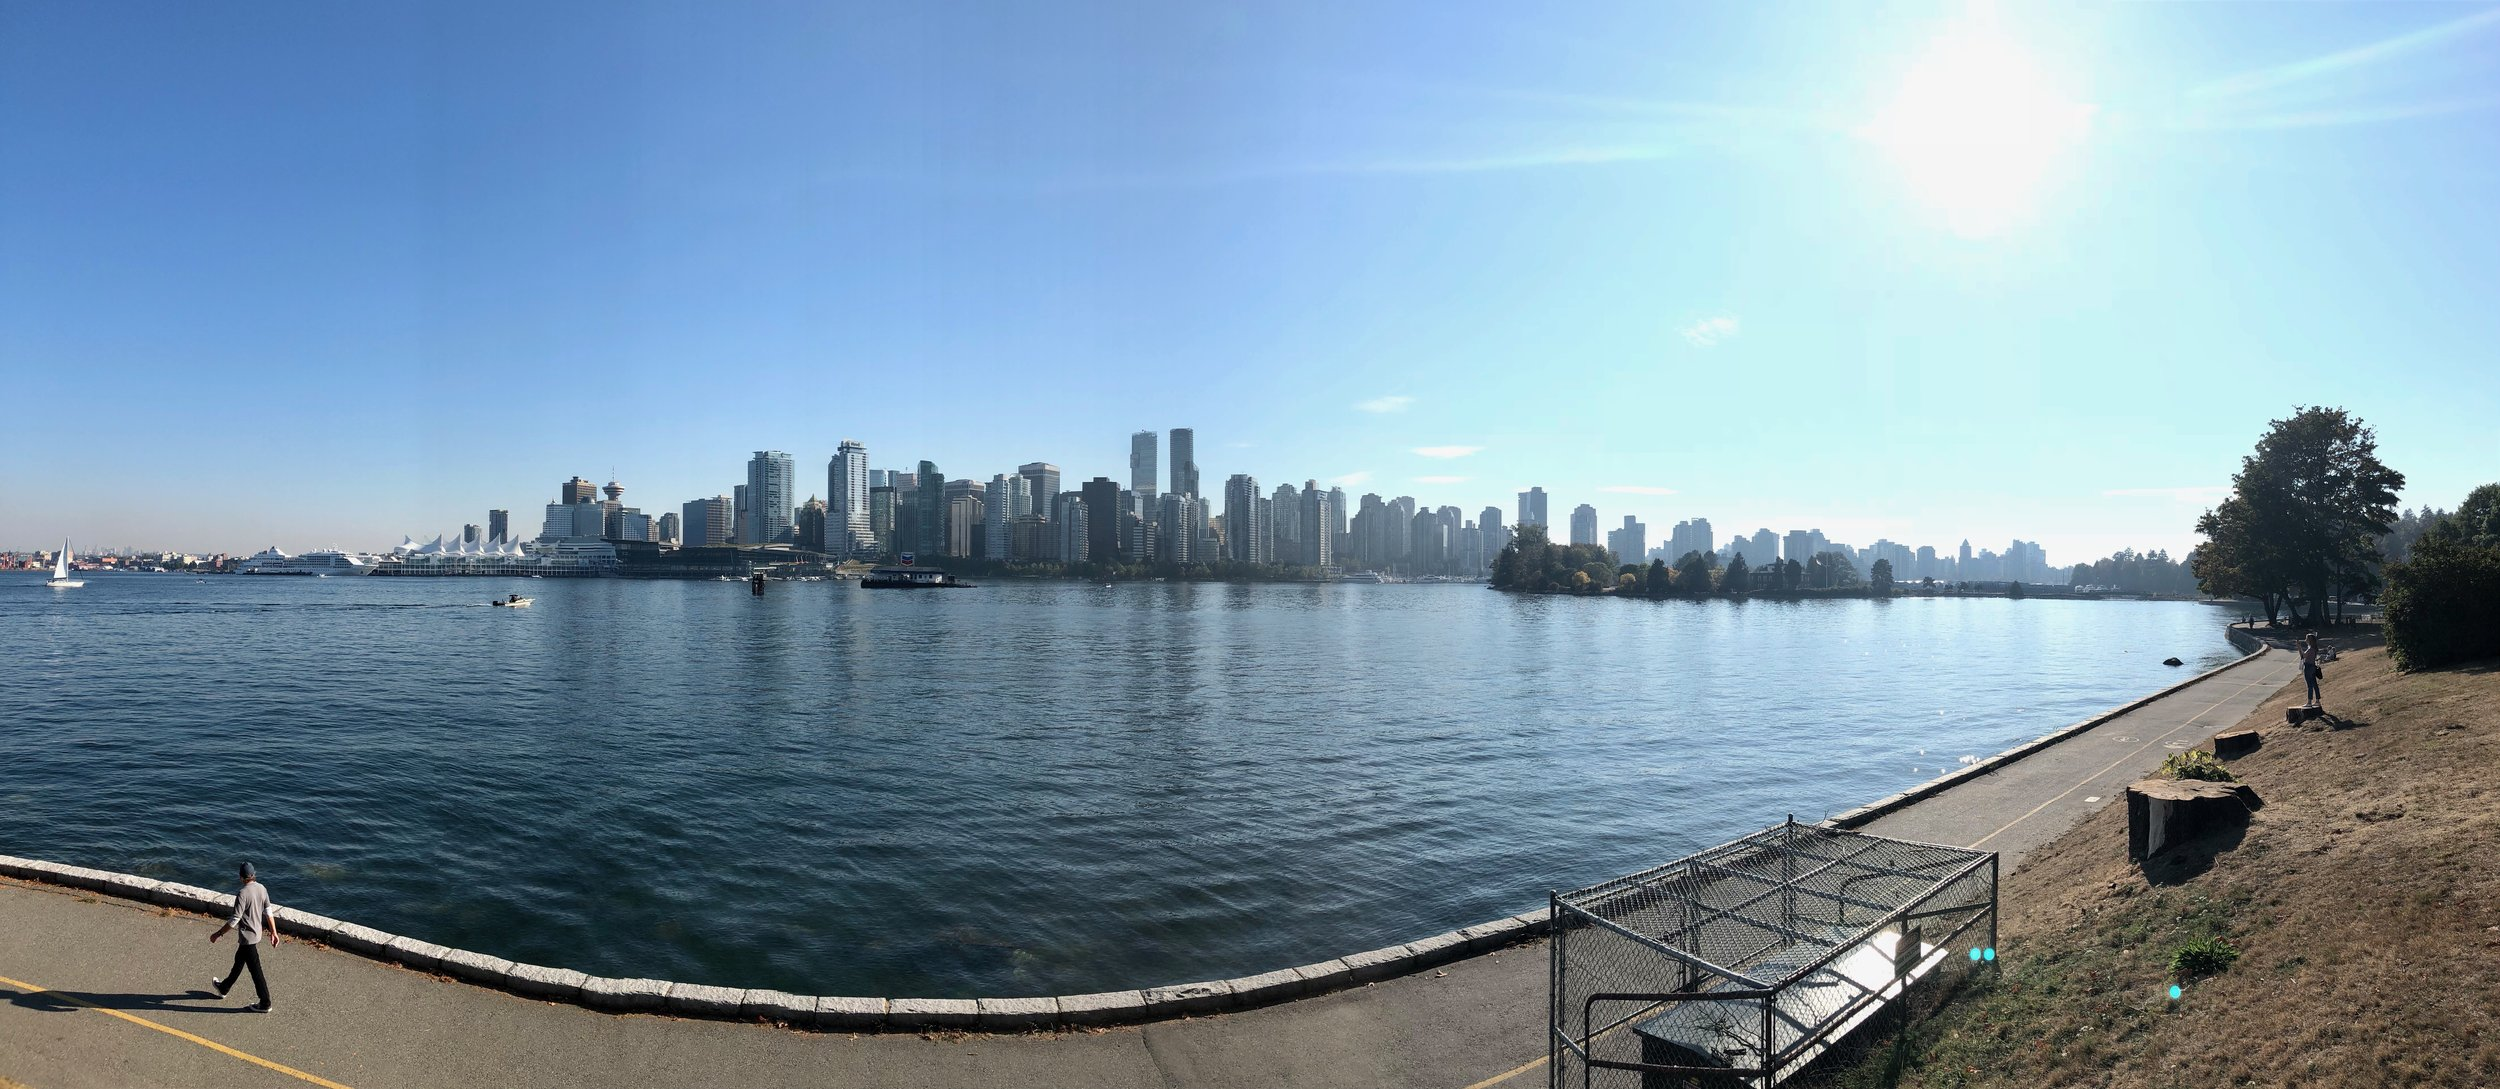 View from the bike bath along the Stanley Park Seawall. You can see the walking path separate from the bike path.